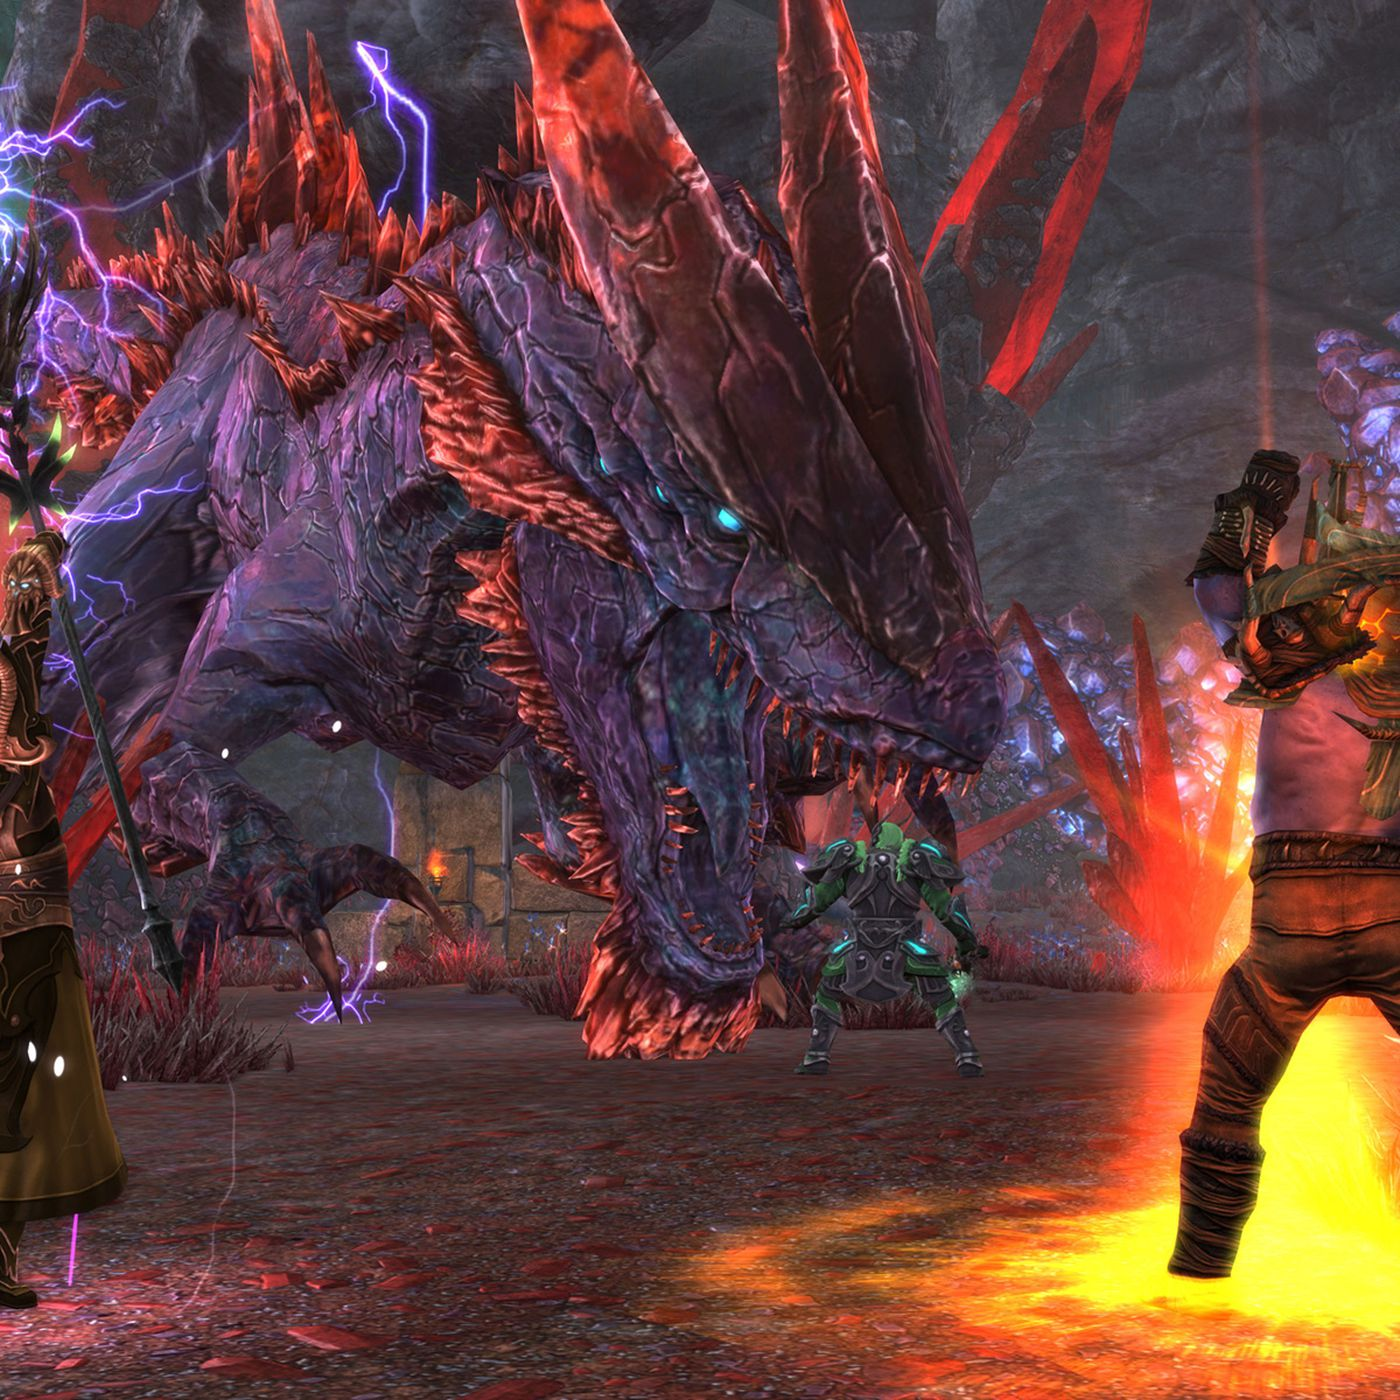 Trion Worlds hit with layoffs after sale to German publisher